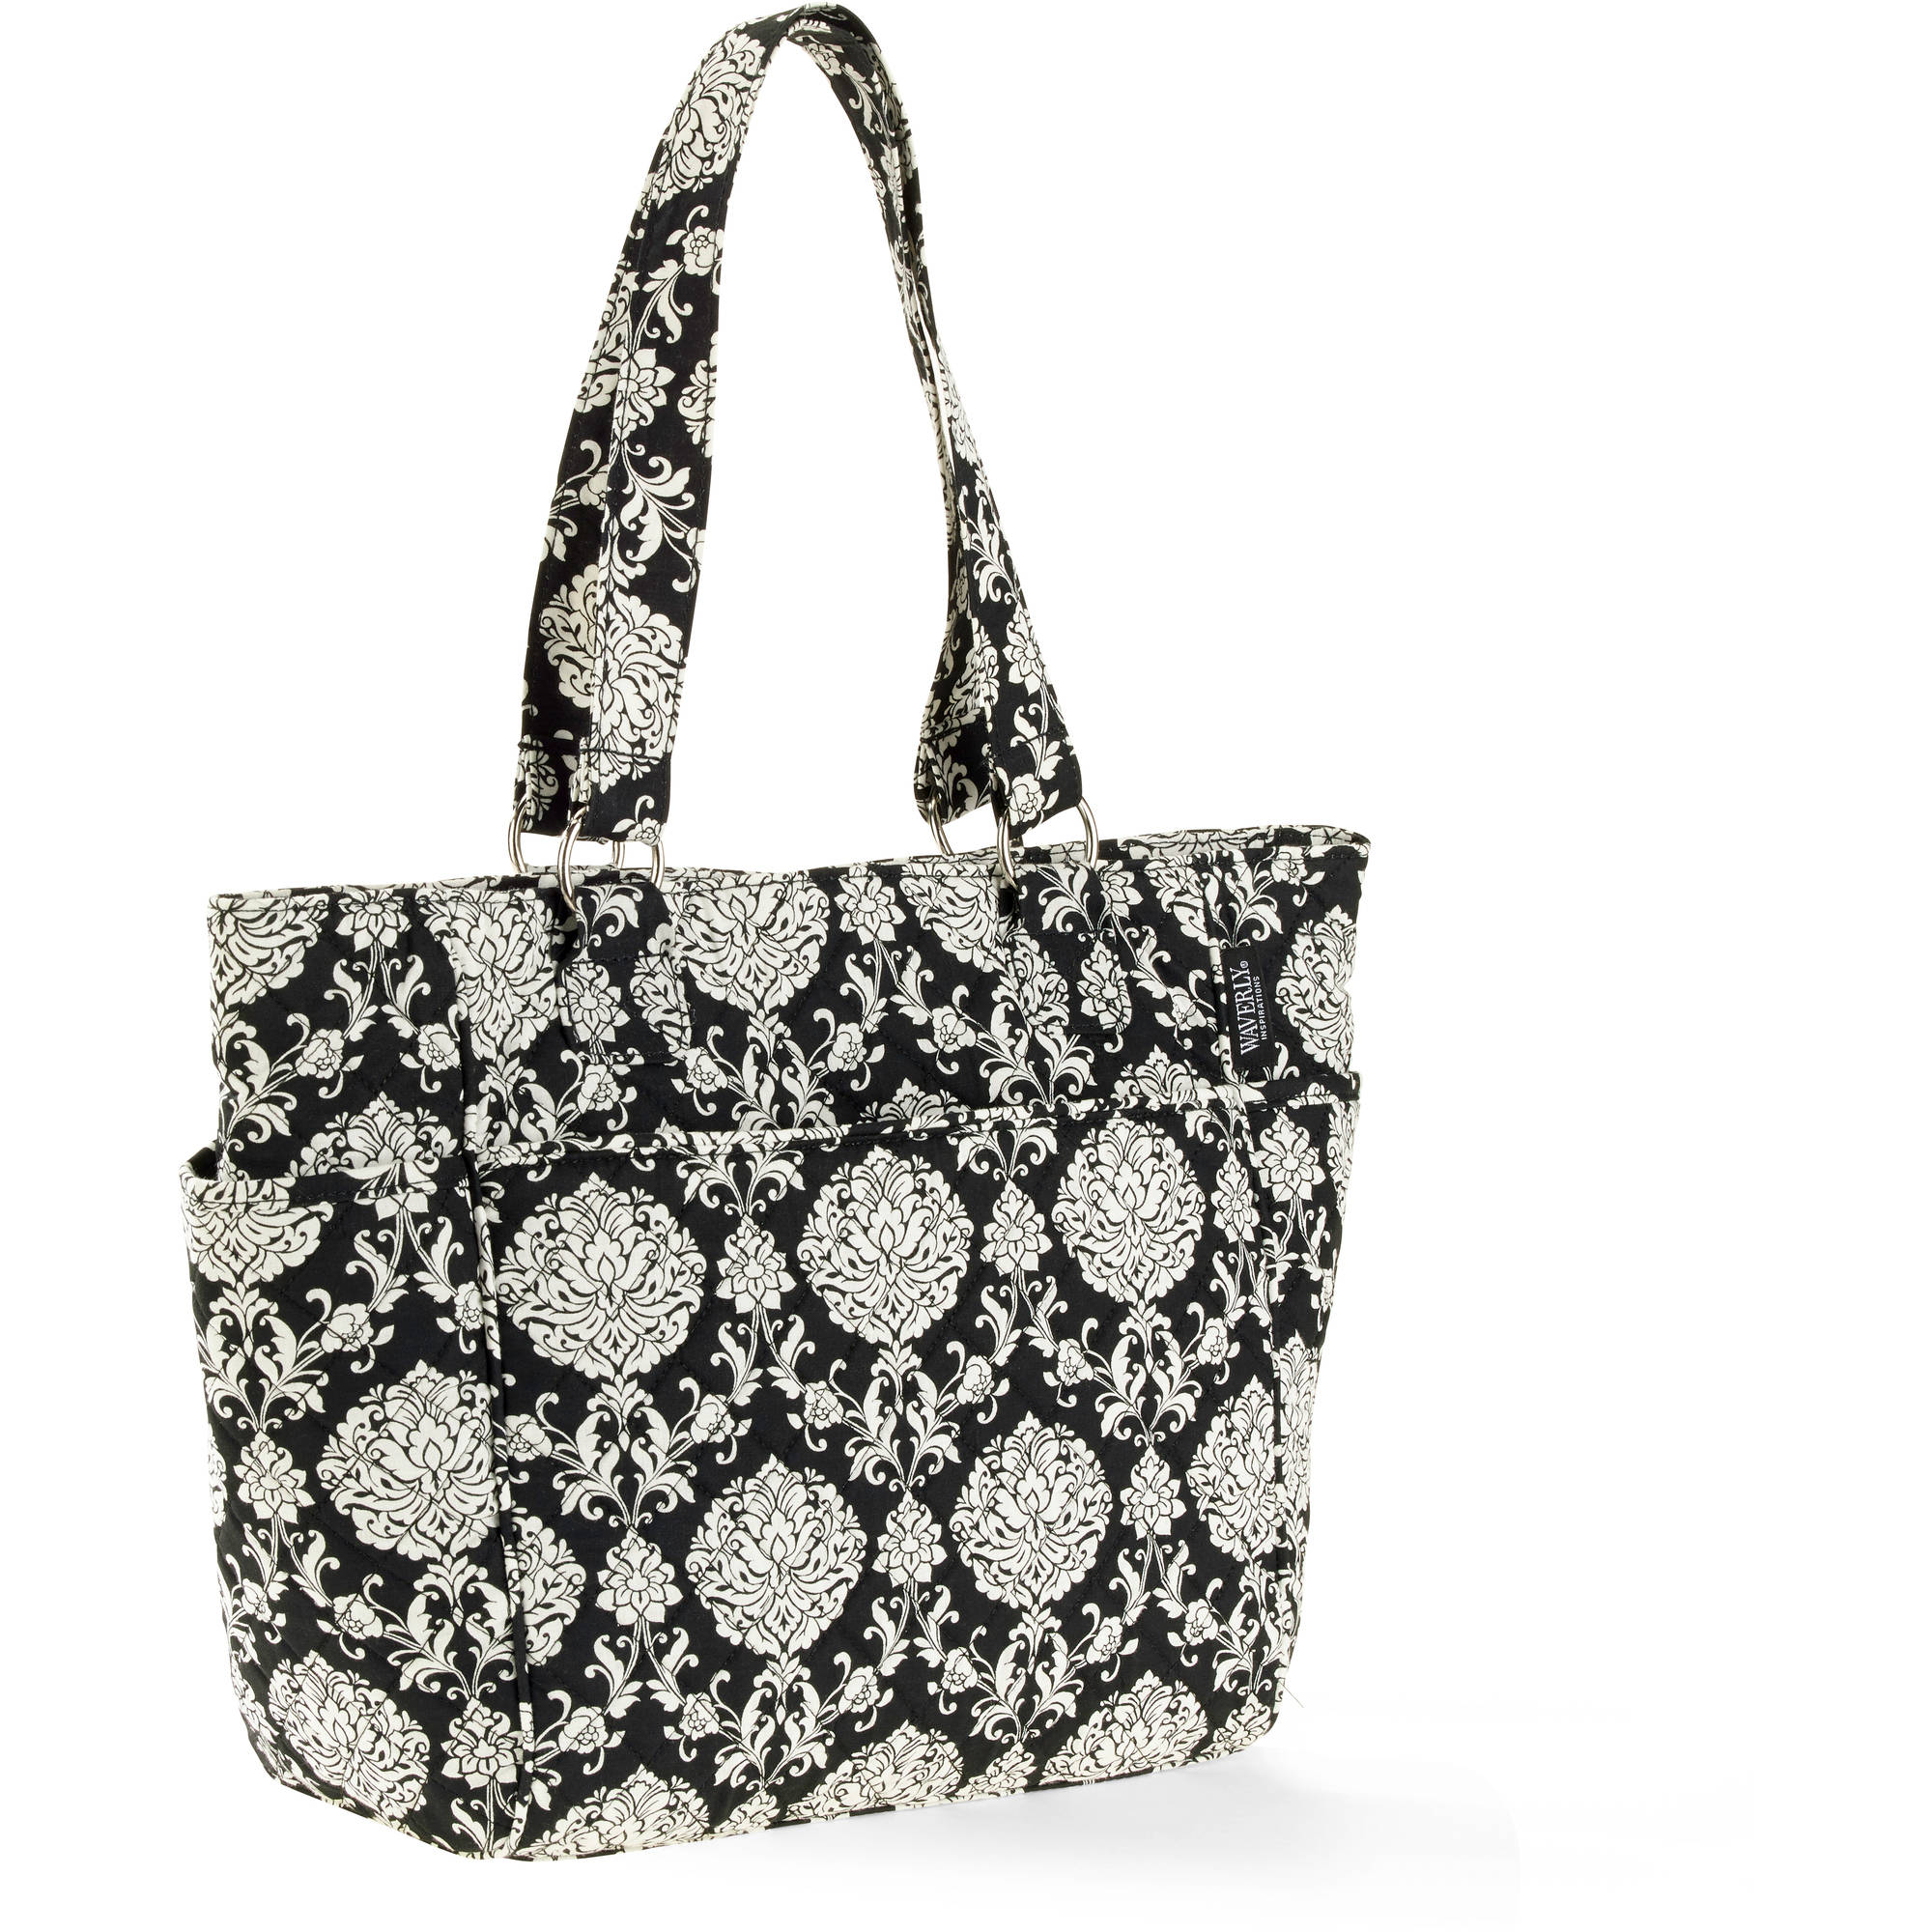 Waverly - Women s Tote Quilt bag - Walmart.com 6c9f3ad4c7